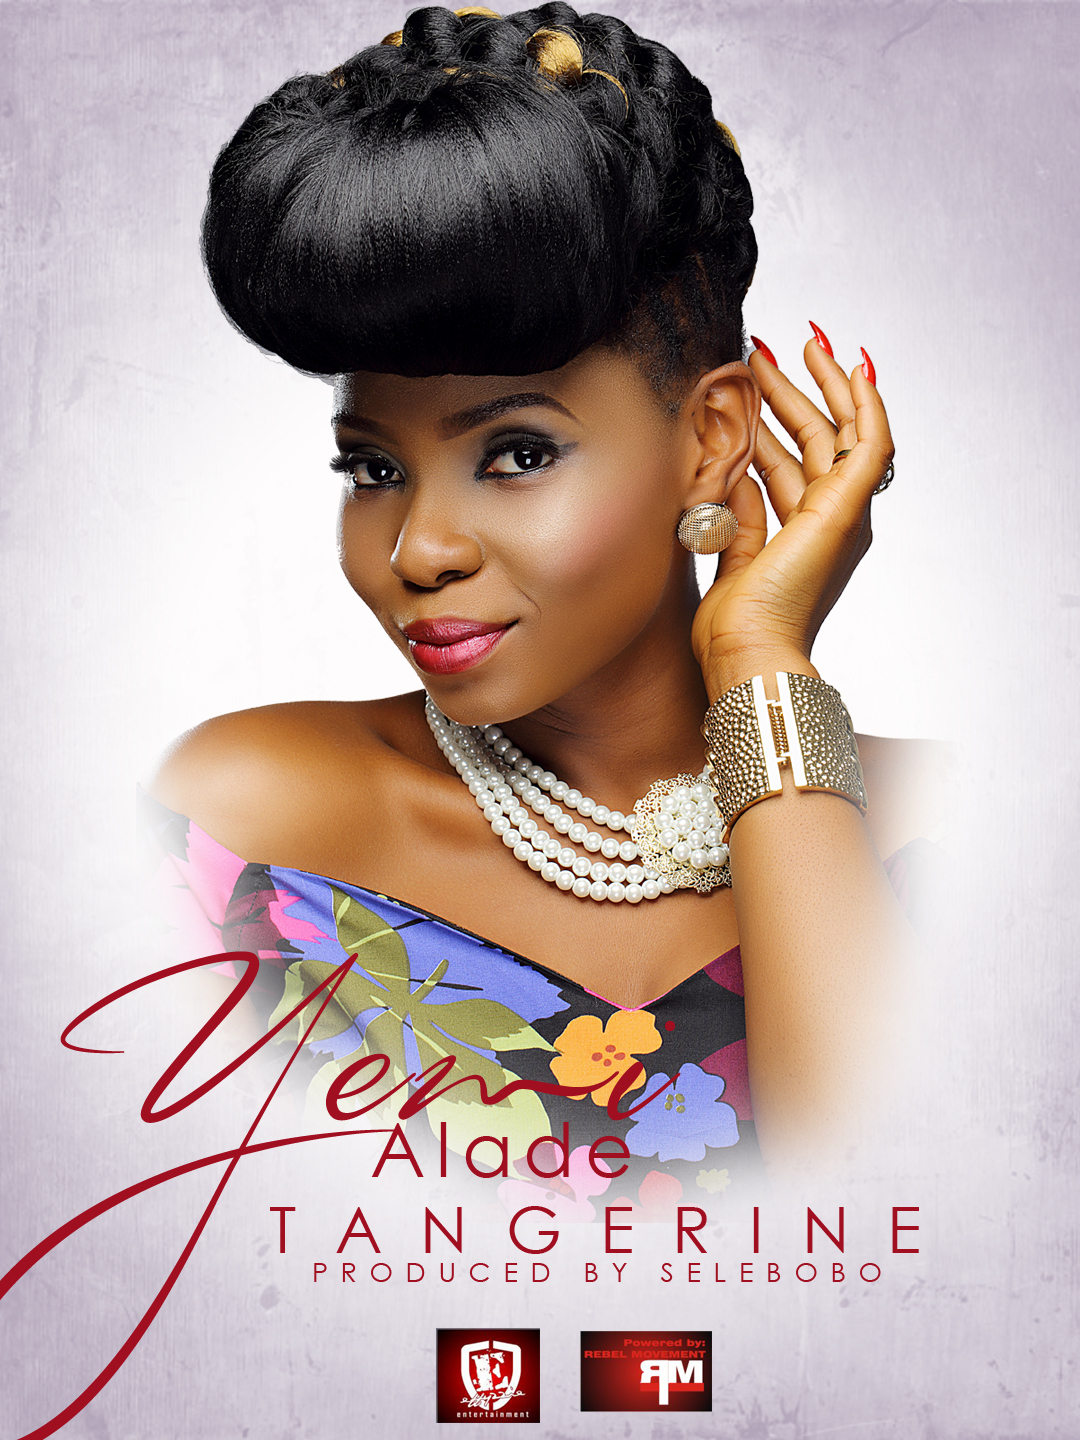 Tangerine song by Yemi Alade (Prod. By Selebobo) Mp3 Download